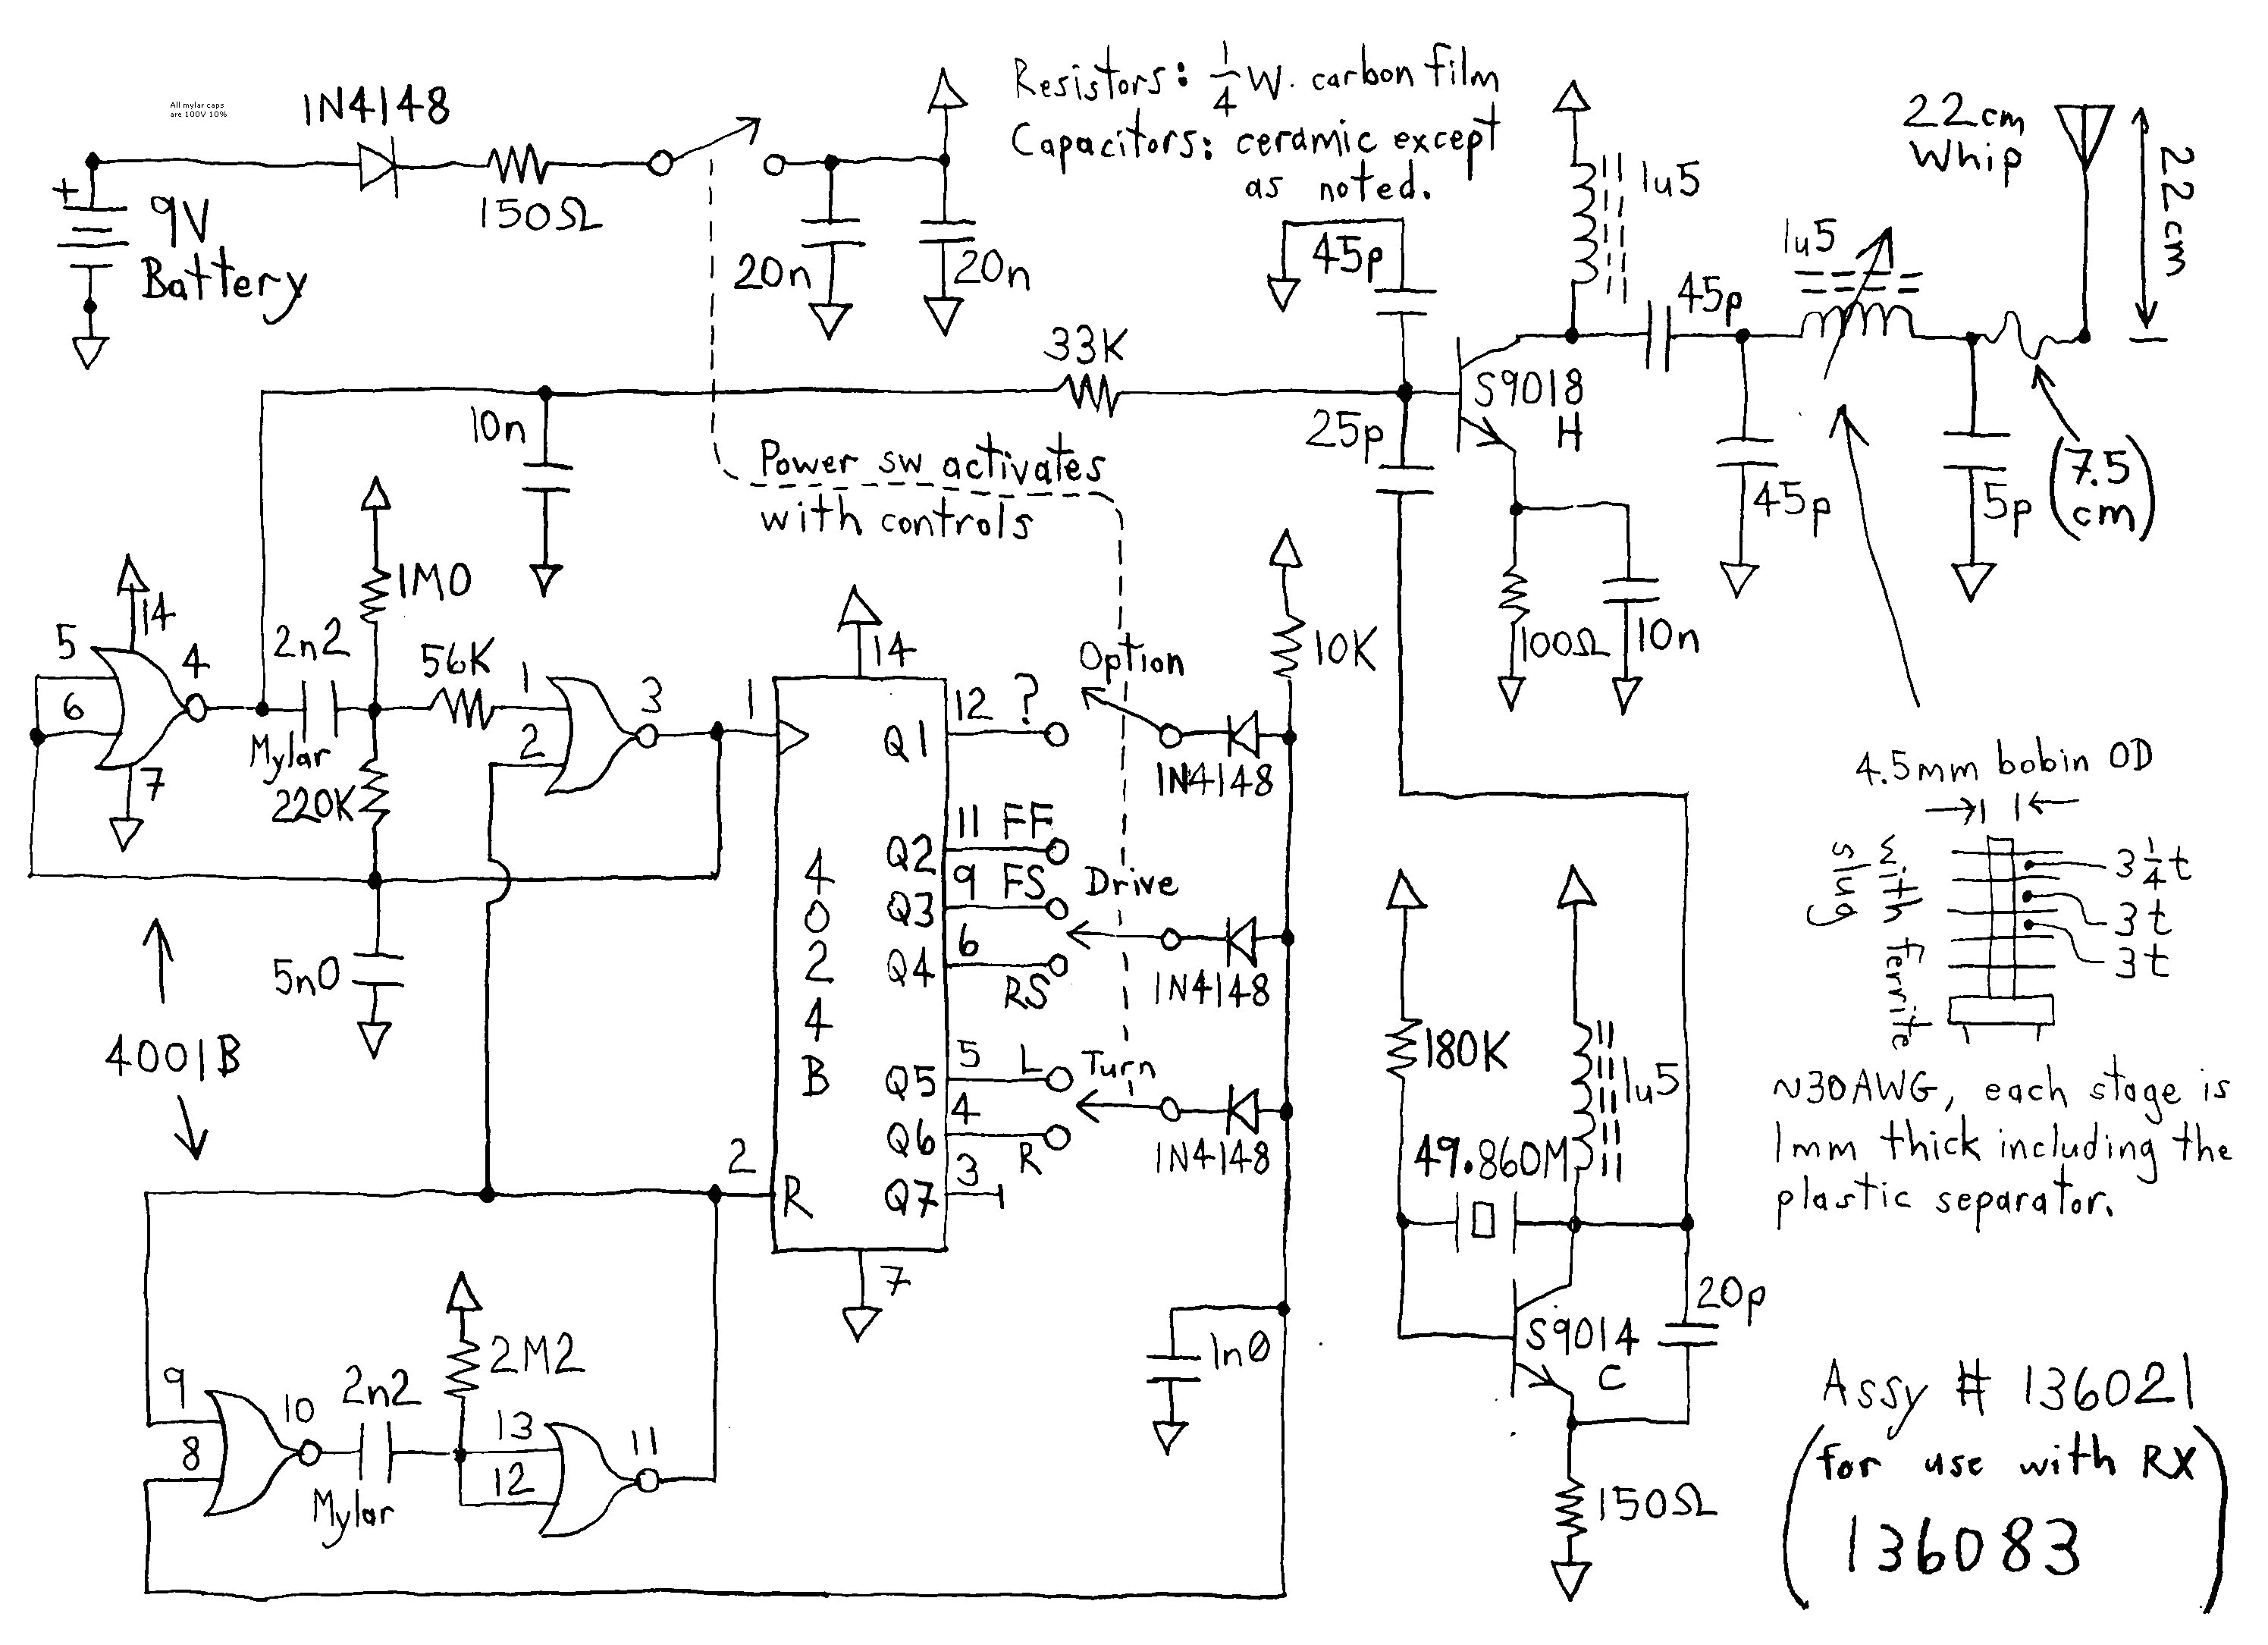 1999 Bluebird Bus Wiring Diagram 49895d1430192812wiringbetweentranexl824tem6xr17trane4twrlow Wiring